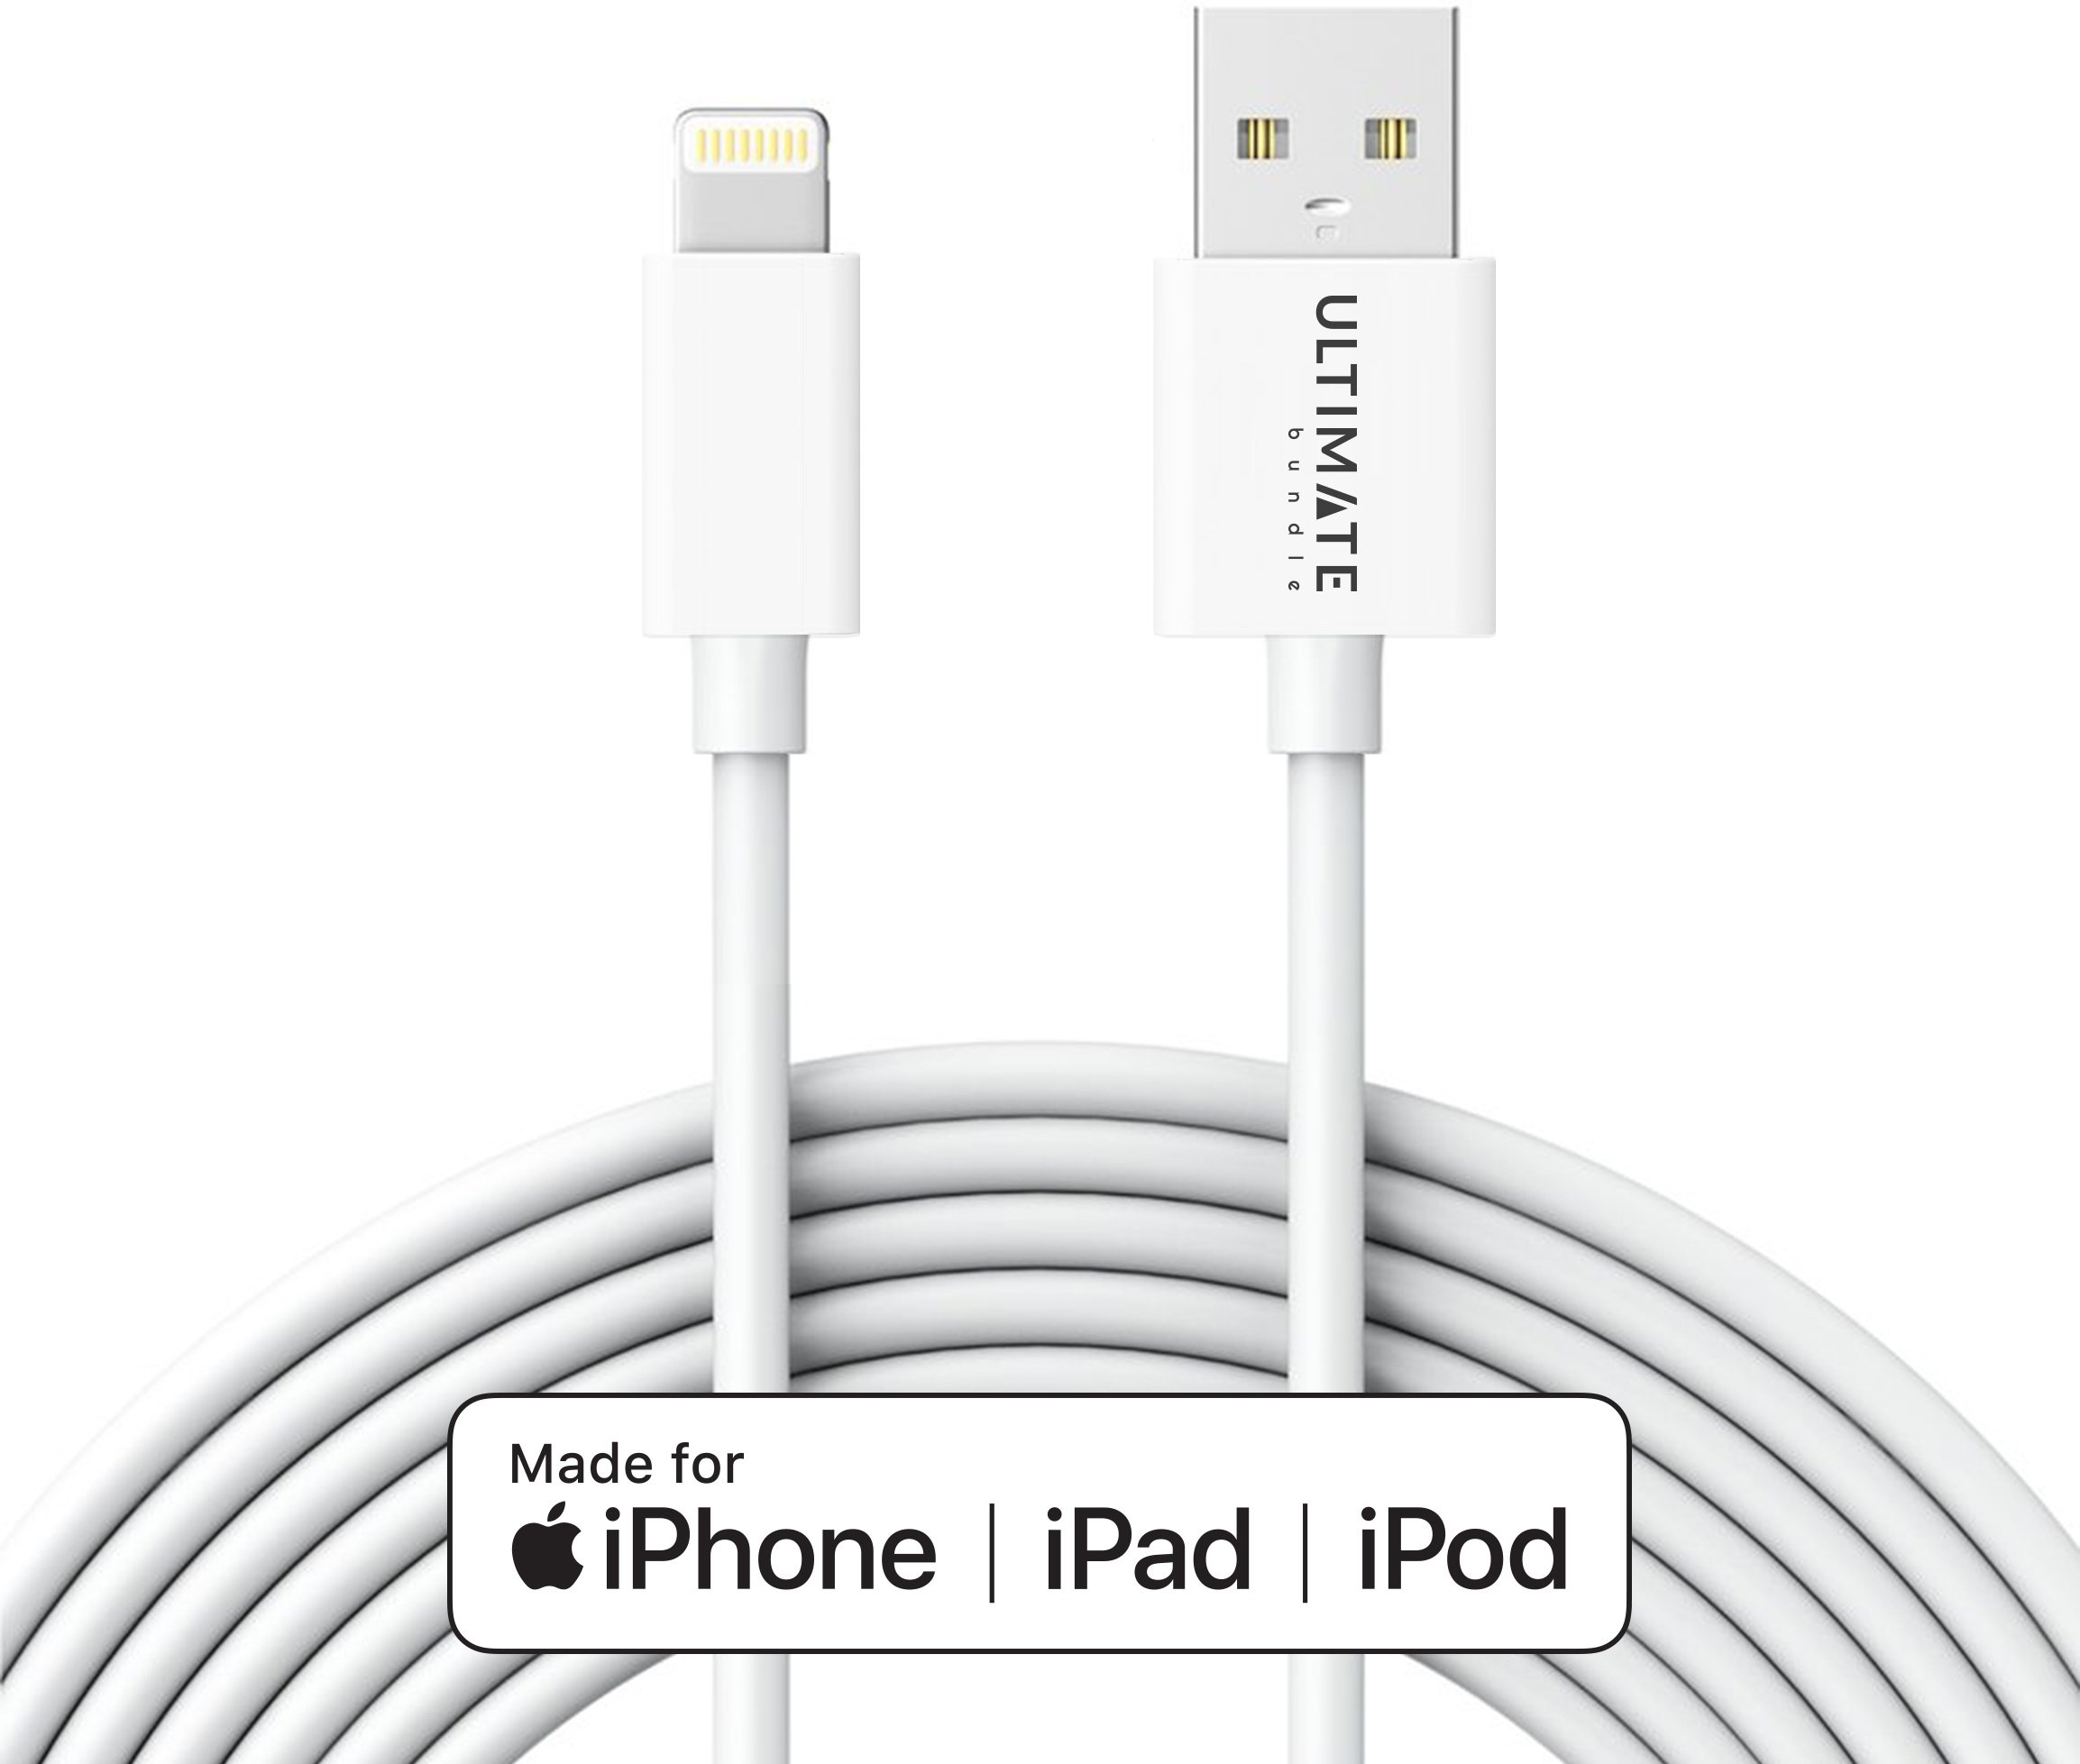 [Apple MFI Certified] 10ft Lightning Cable by UltimateBundle, iPhone Charger, Most Durable USB Charging Cord Ever Made for iPhone X/8/8 Plus/7/6s/6/iPad (White)